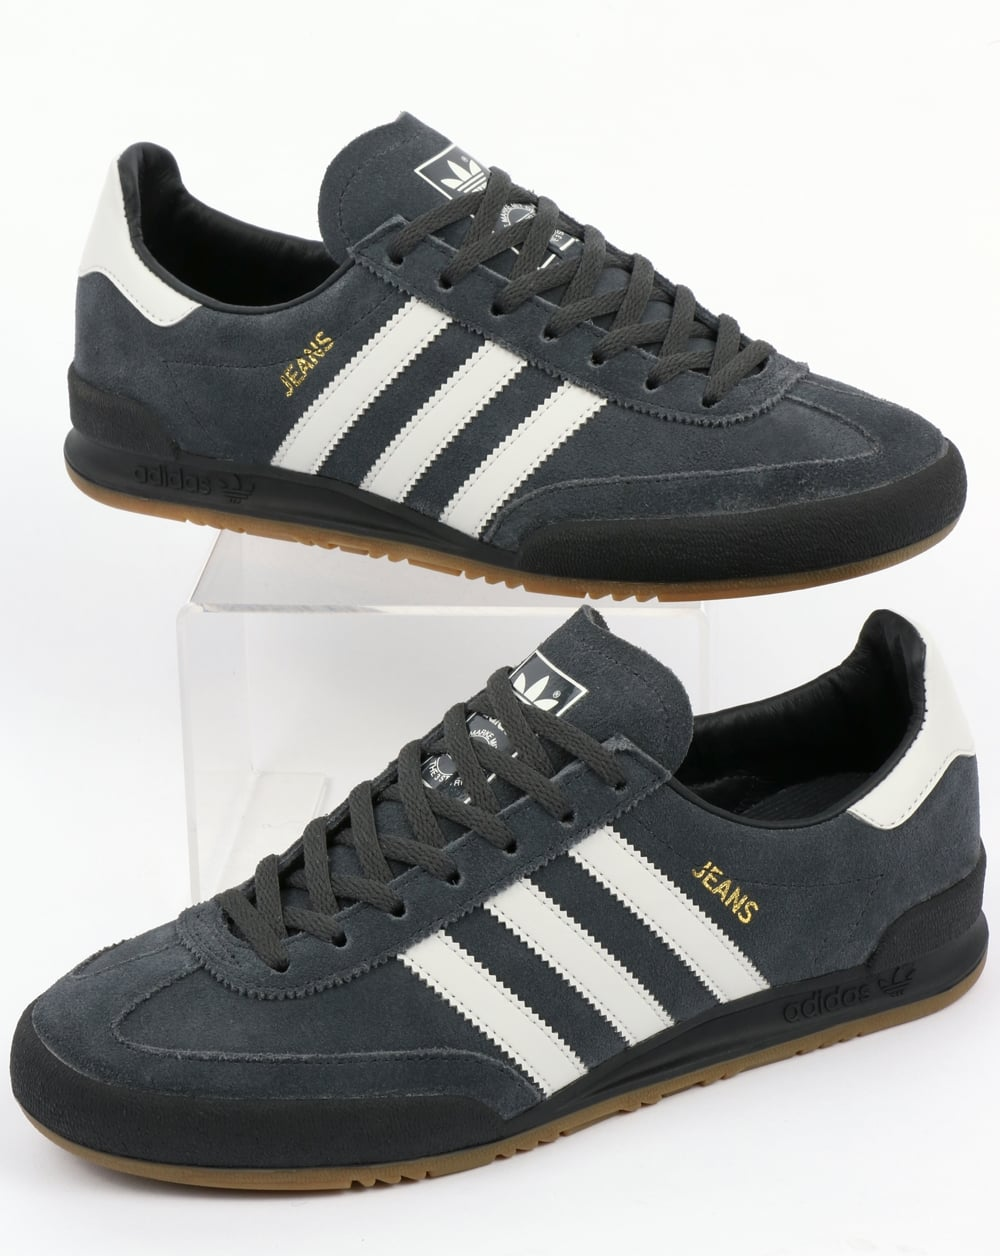 Adidas Jeans Trainers Mk2 Carbon Grey